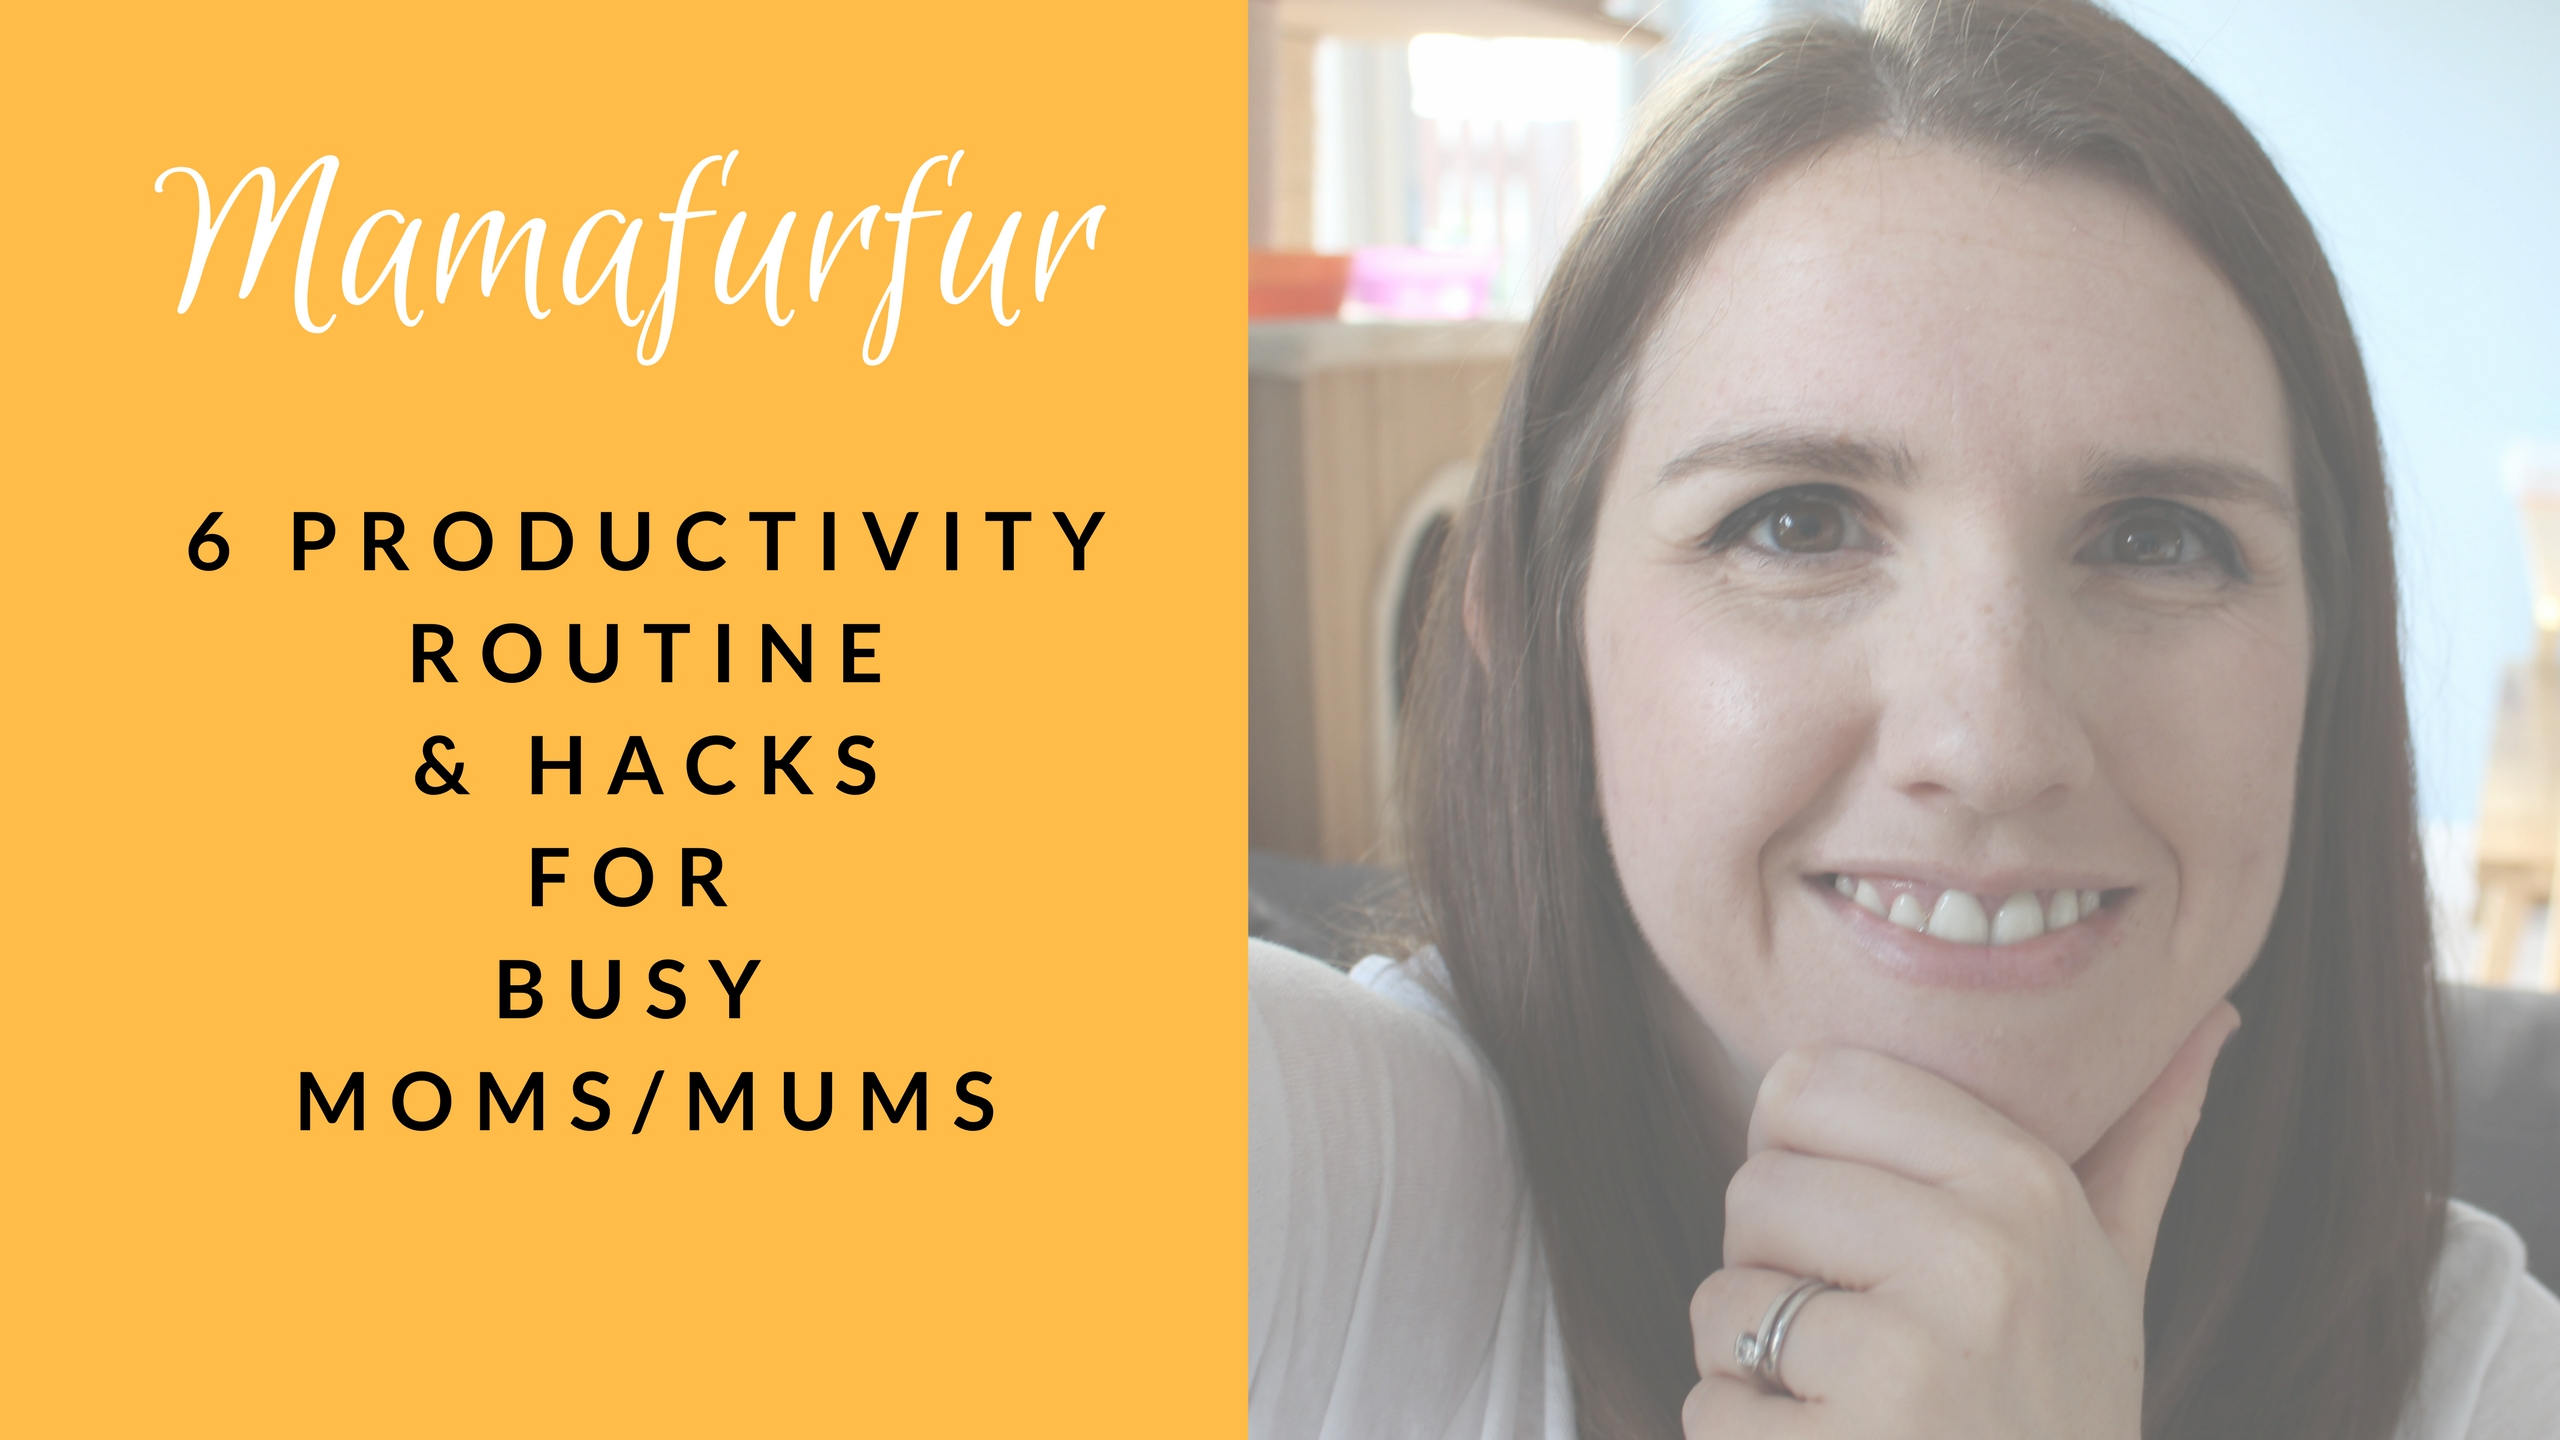 6 Productivity Routine & Hacks for Busy Mums ¦ How to be productive - Mamafurfur Youtube Channel